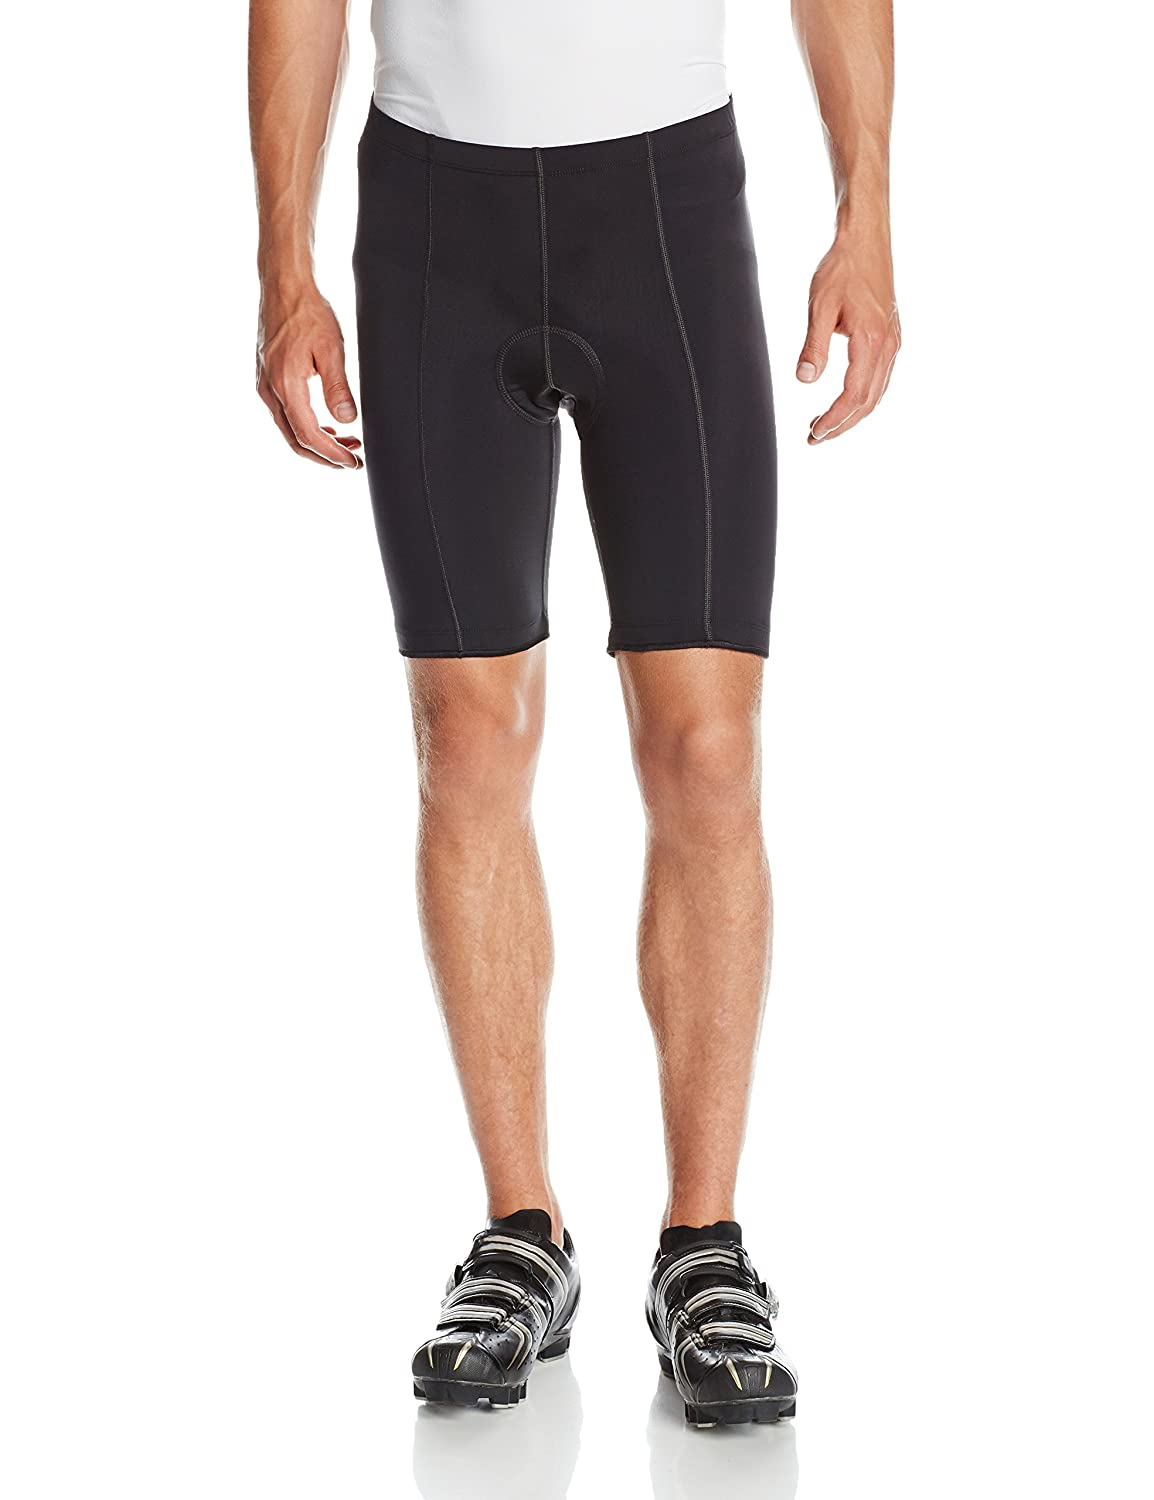 BDI Cycling Apparel BDI Herren 8-teilig flatseam Gel Fahrrad Shorts